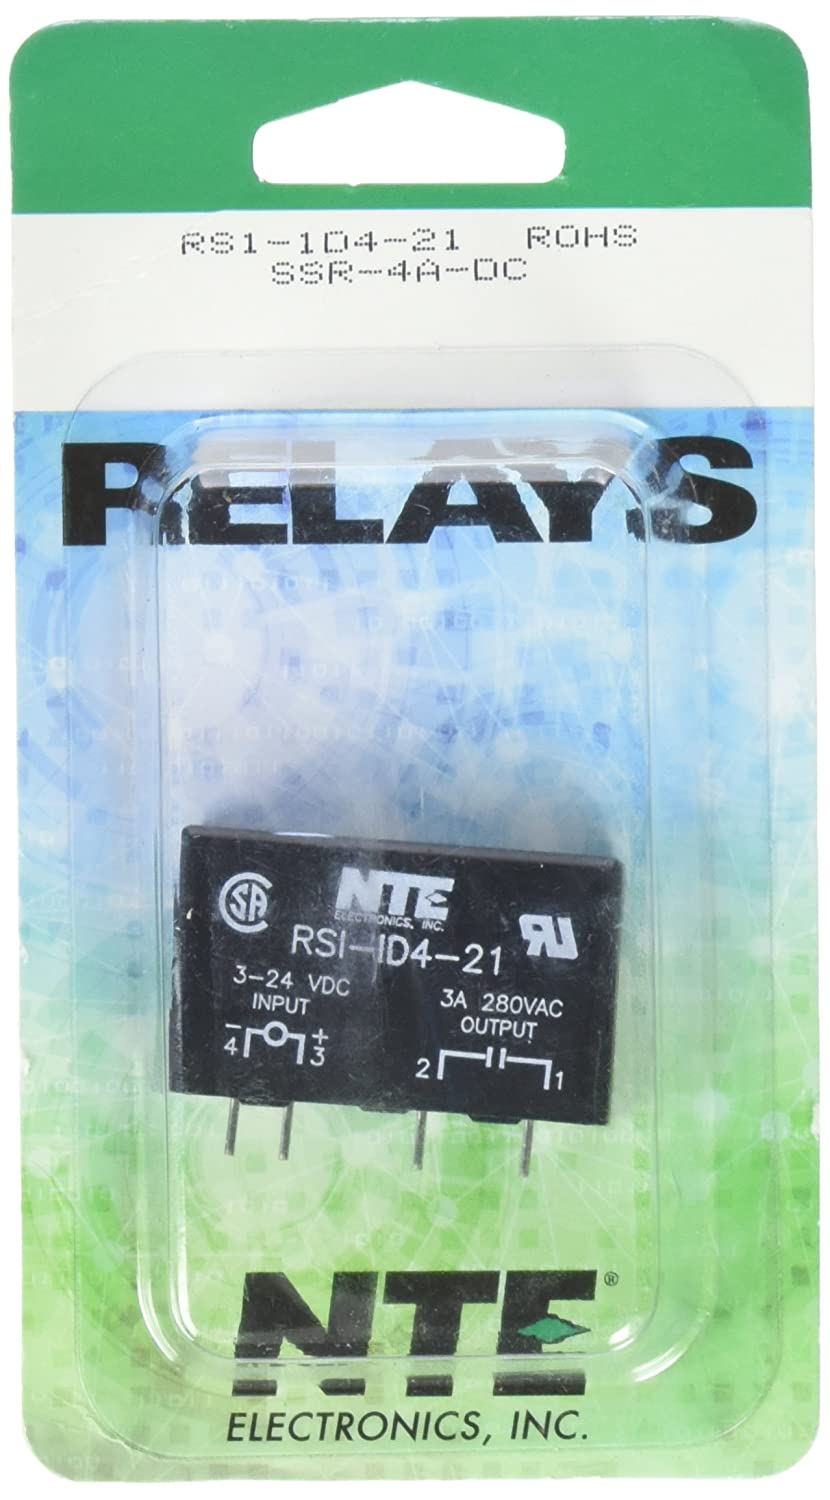 NTE Electronics RS1-1D4-21 Series RS1 Printed Circuit Board Mountable Solid State Relay 4 Amp Inc. 280 VAC Output SPST Contact Arrangement